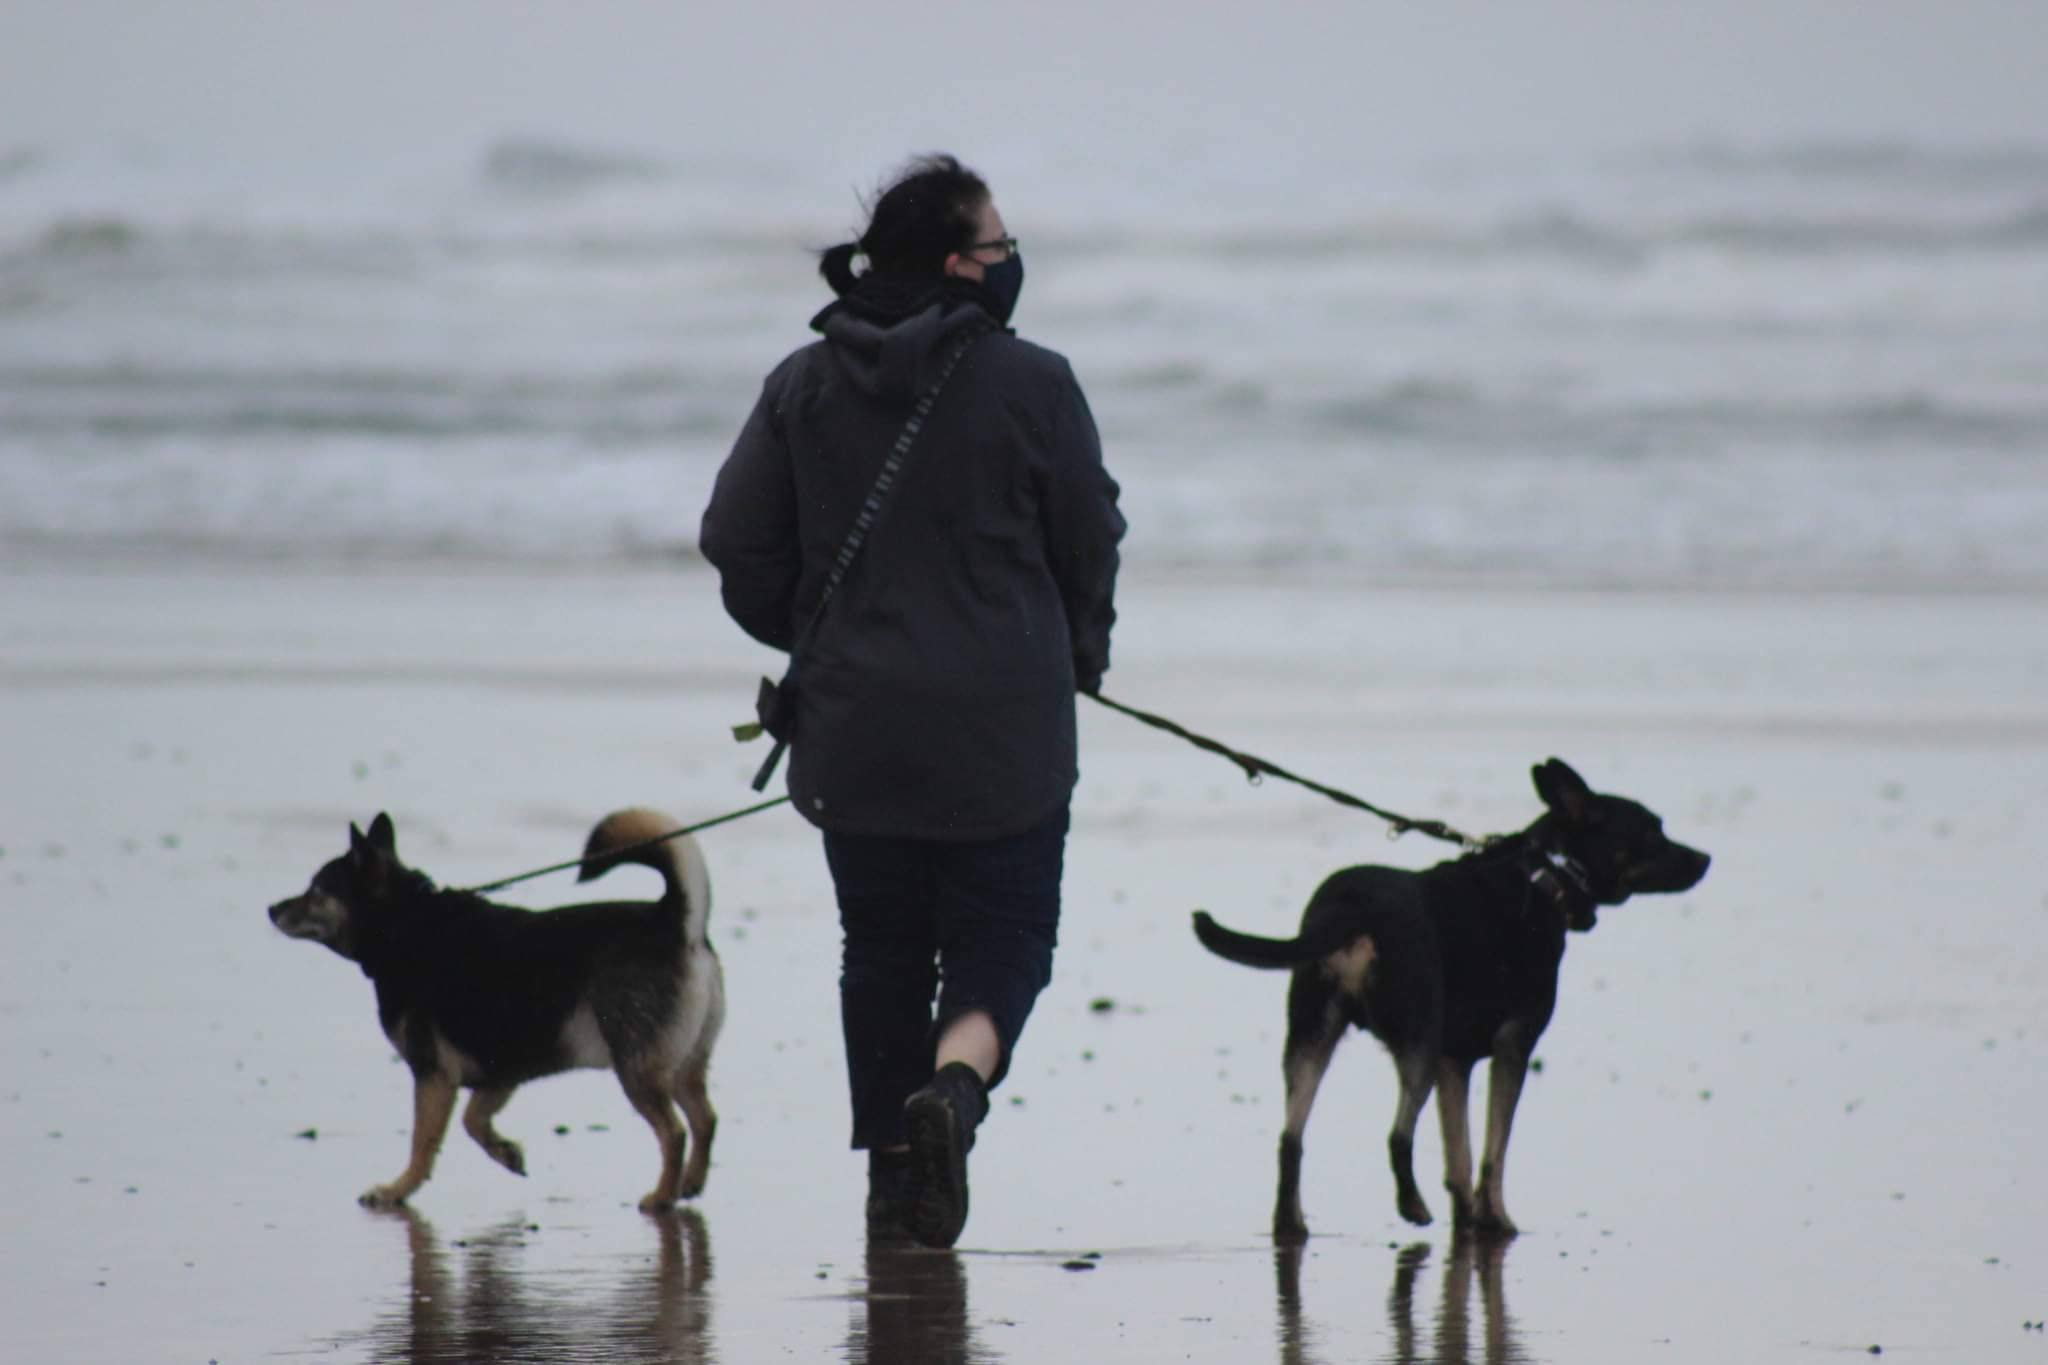 Ranada walking on the beach with her two dogs